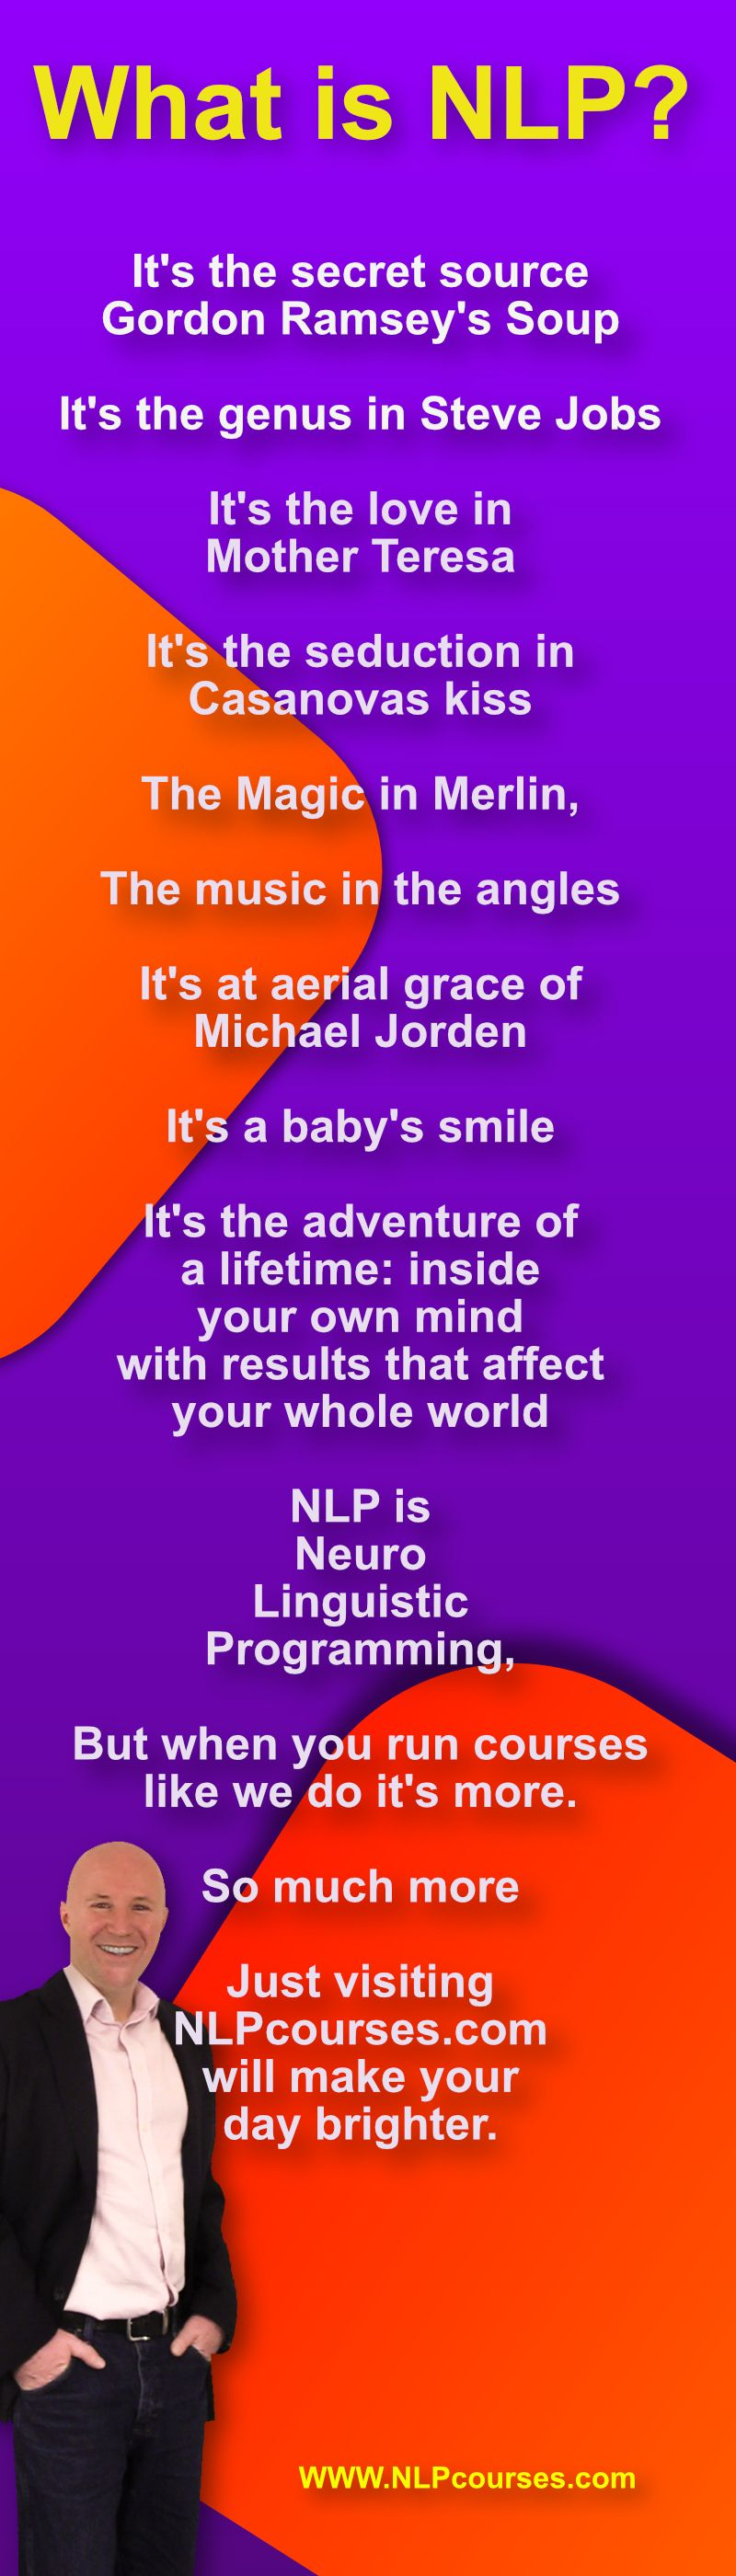 What is NLP? Neuro-Linguistic Programming. It's the ...